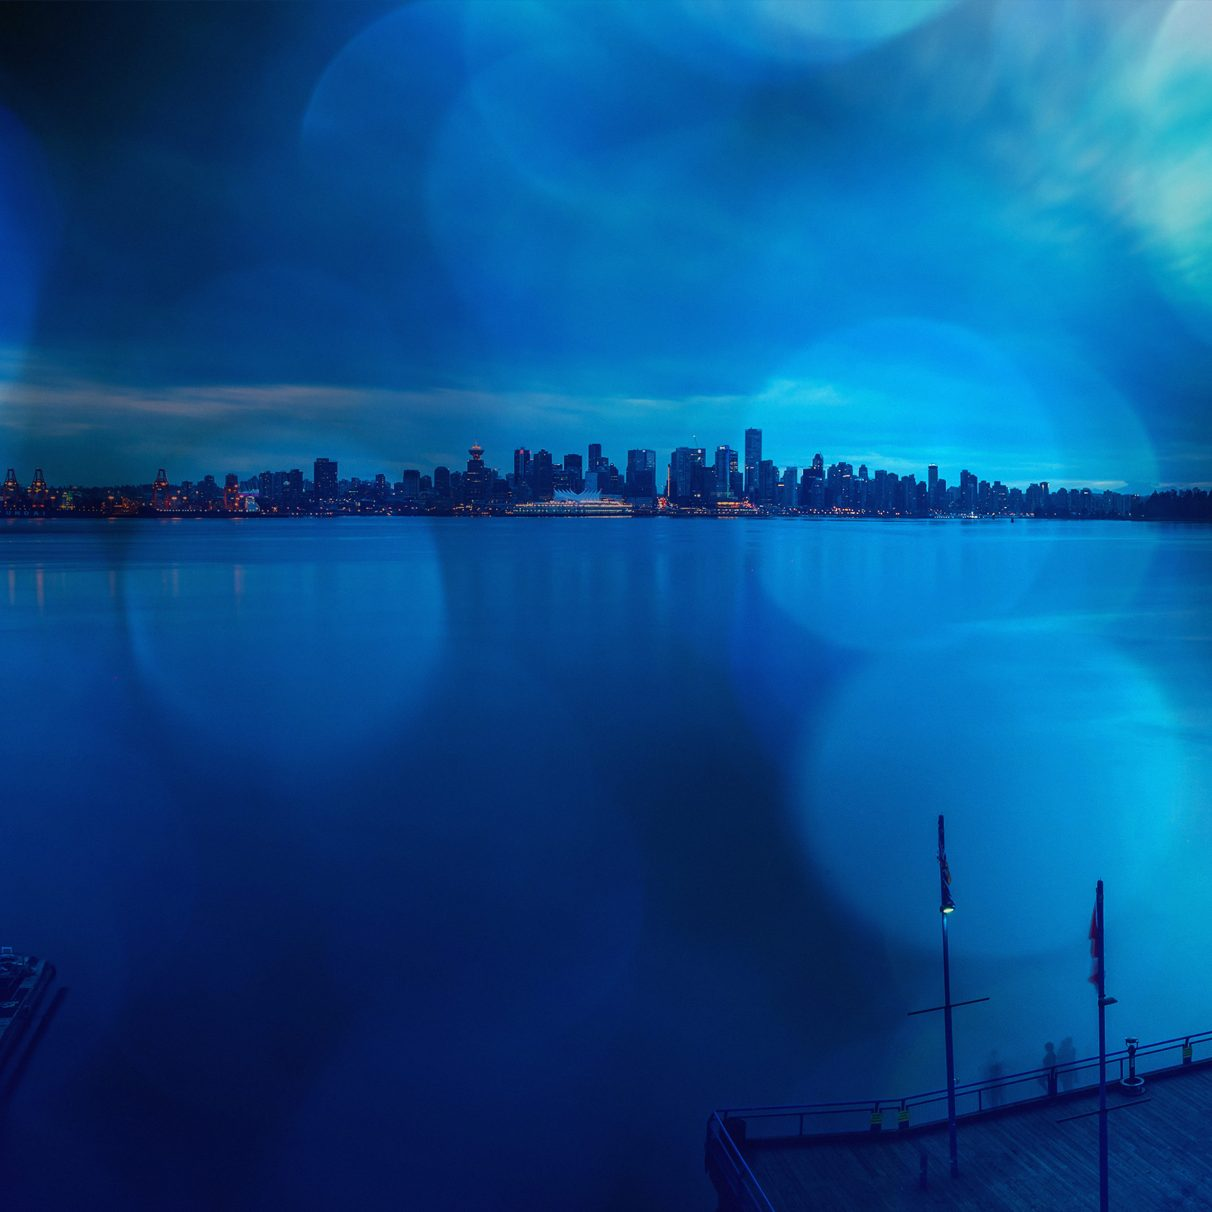 papers-co-mn99-lake-city-afternoon-blue-flare-nature-40-wallpaper